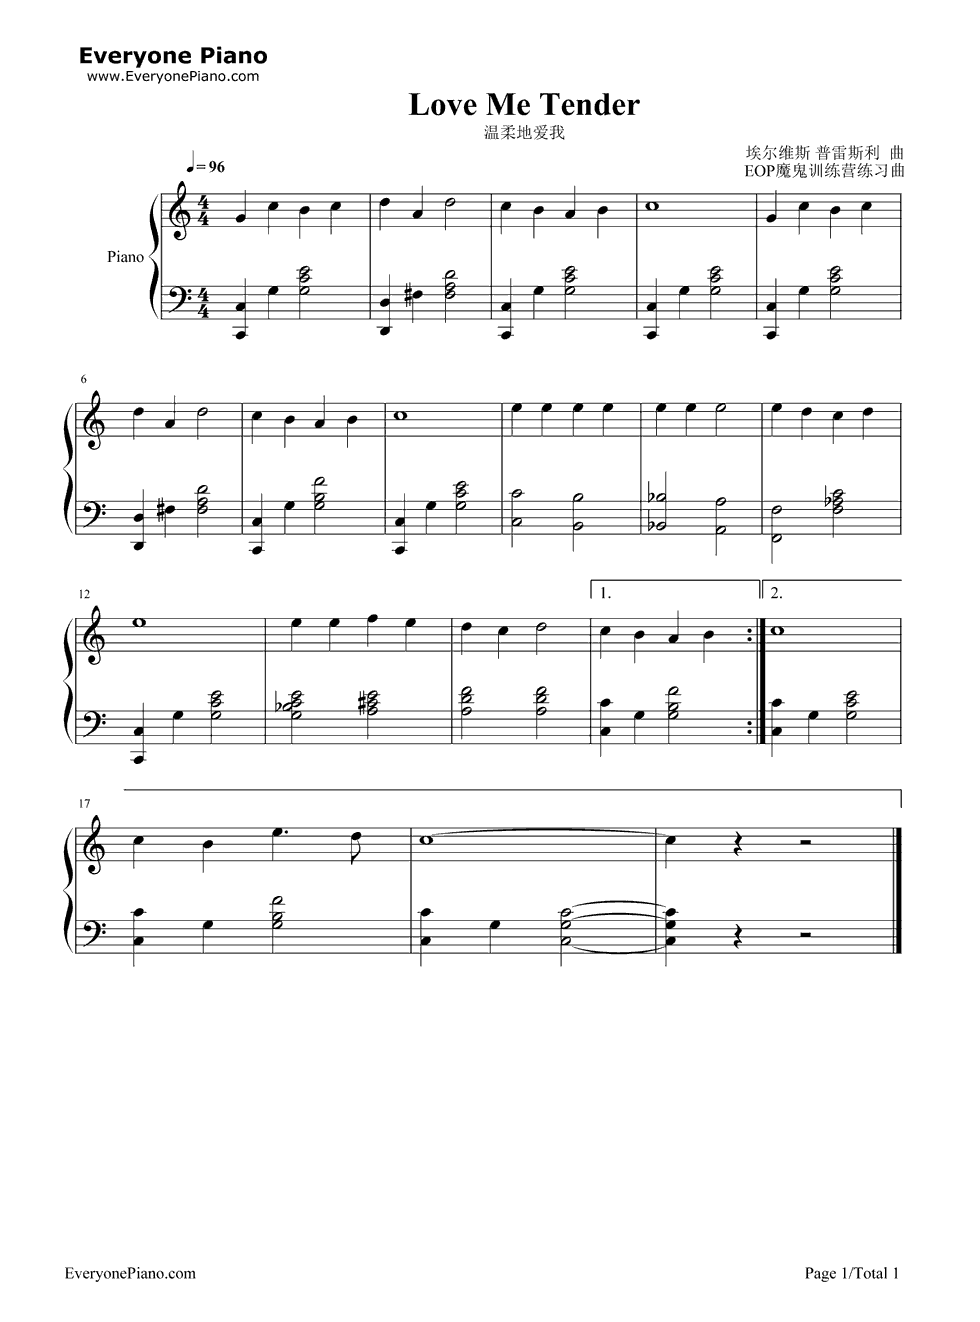 love me tender stave preview 1 free piano sheet music piano chords. Black Bedroom Furniture Sets. Home Design Ideas